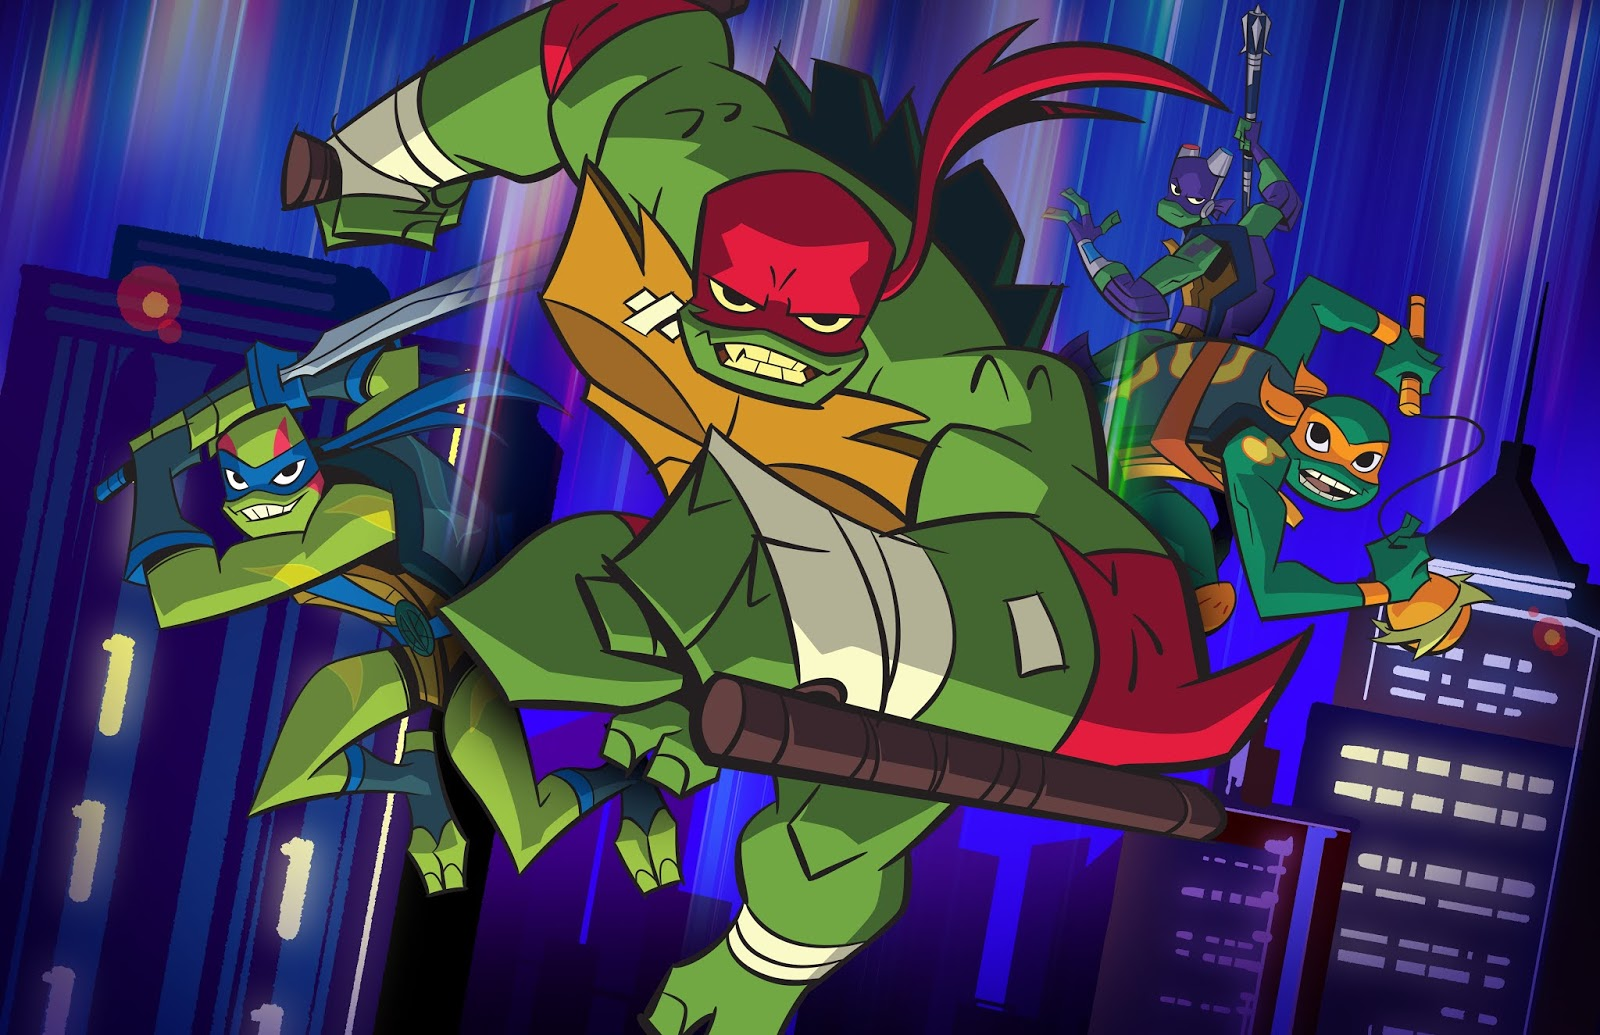 Nickalive Nicktoons Usa To Premiere New Finale Episodes Of Rise Of The Tmnt On Friday August 7 2020